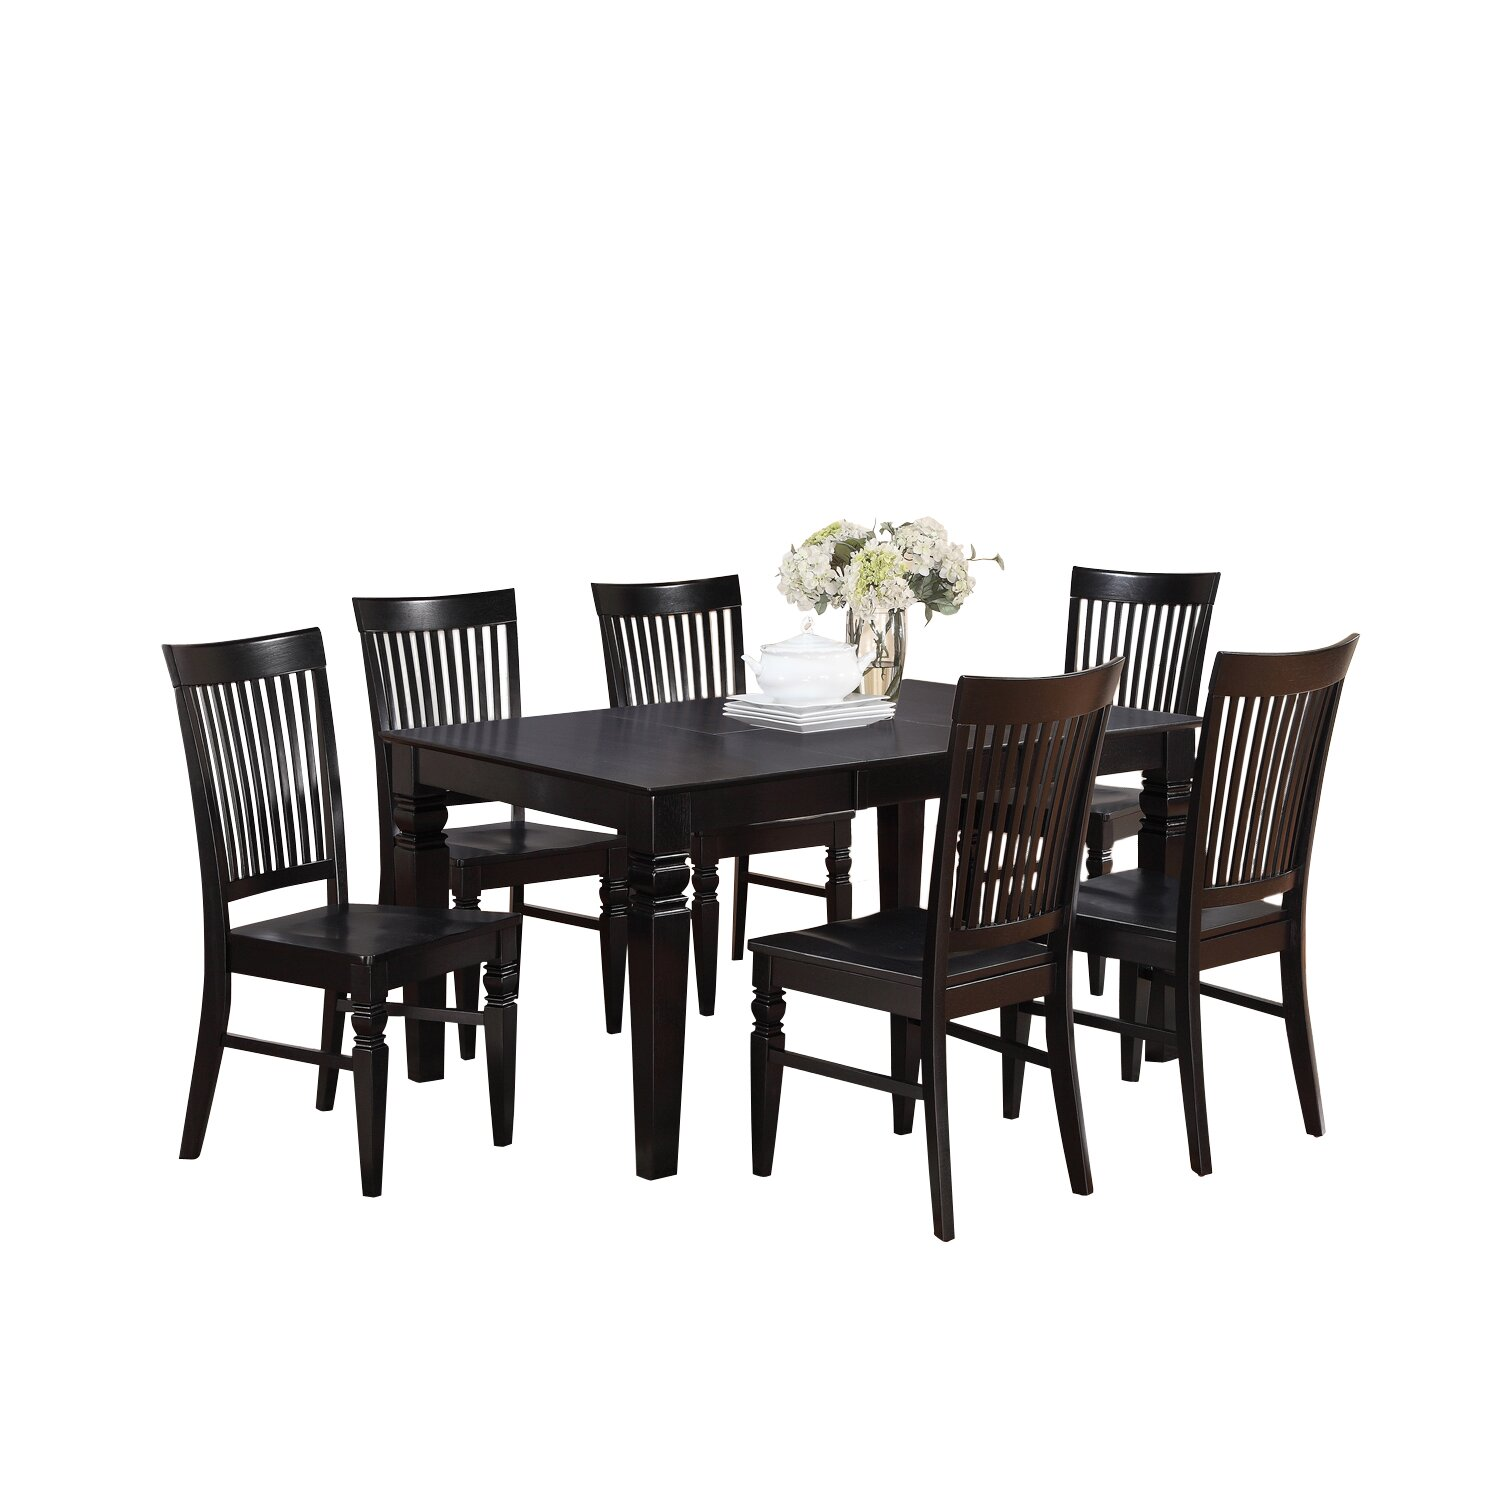 breakwater bay piermont 7 piece dining set amp reviews wayfair